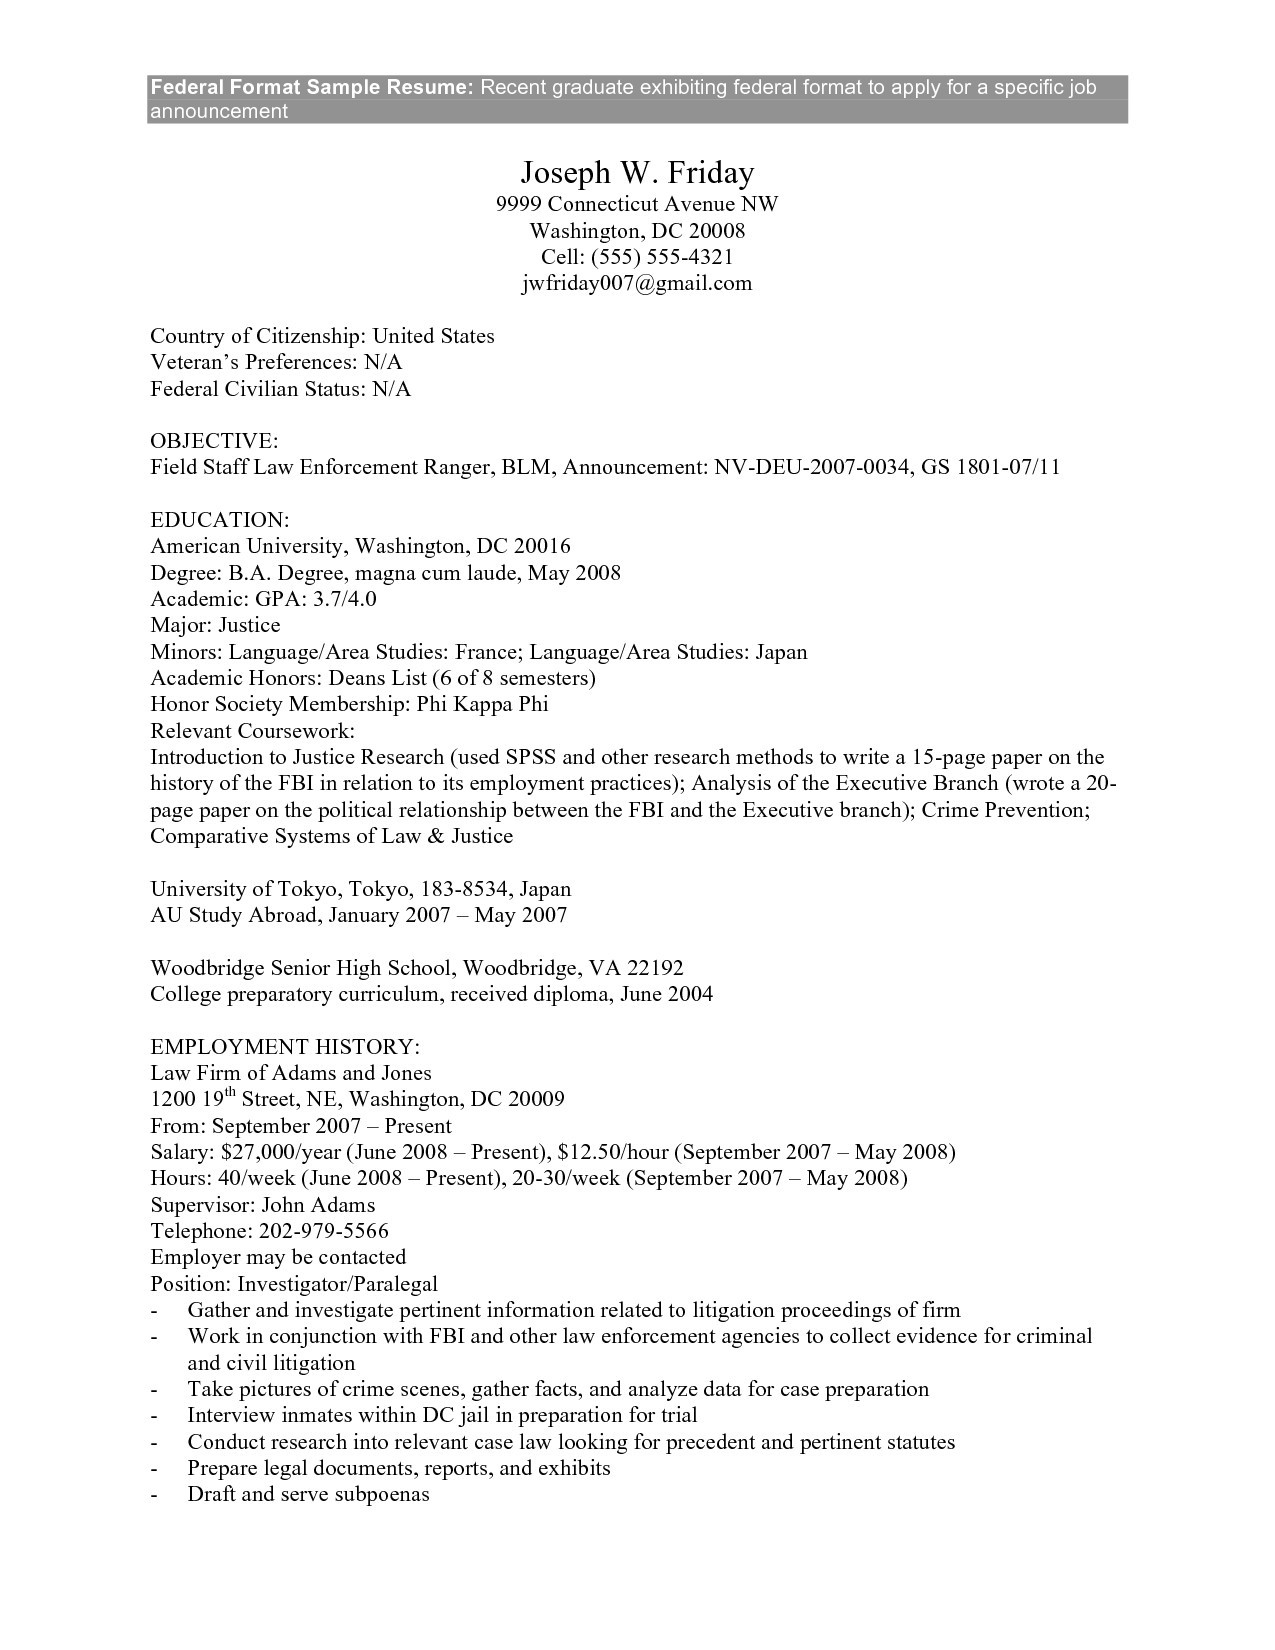 Veteran Resume Template - Veteran Resume Help New Resumes by Joyce Unique Experienced Rn